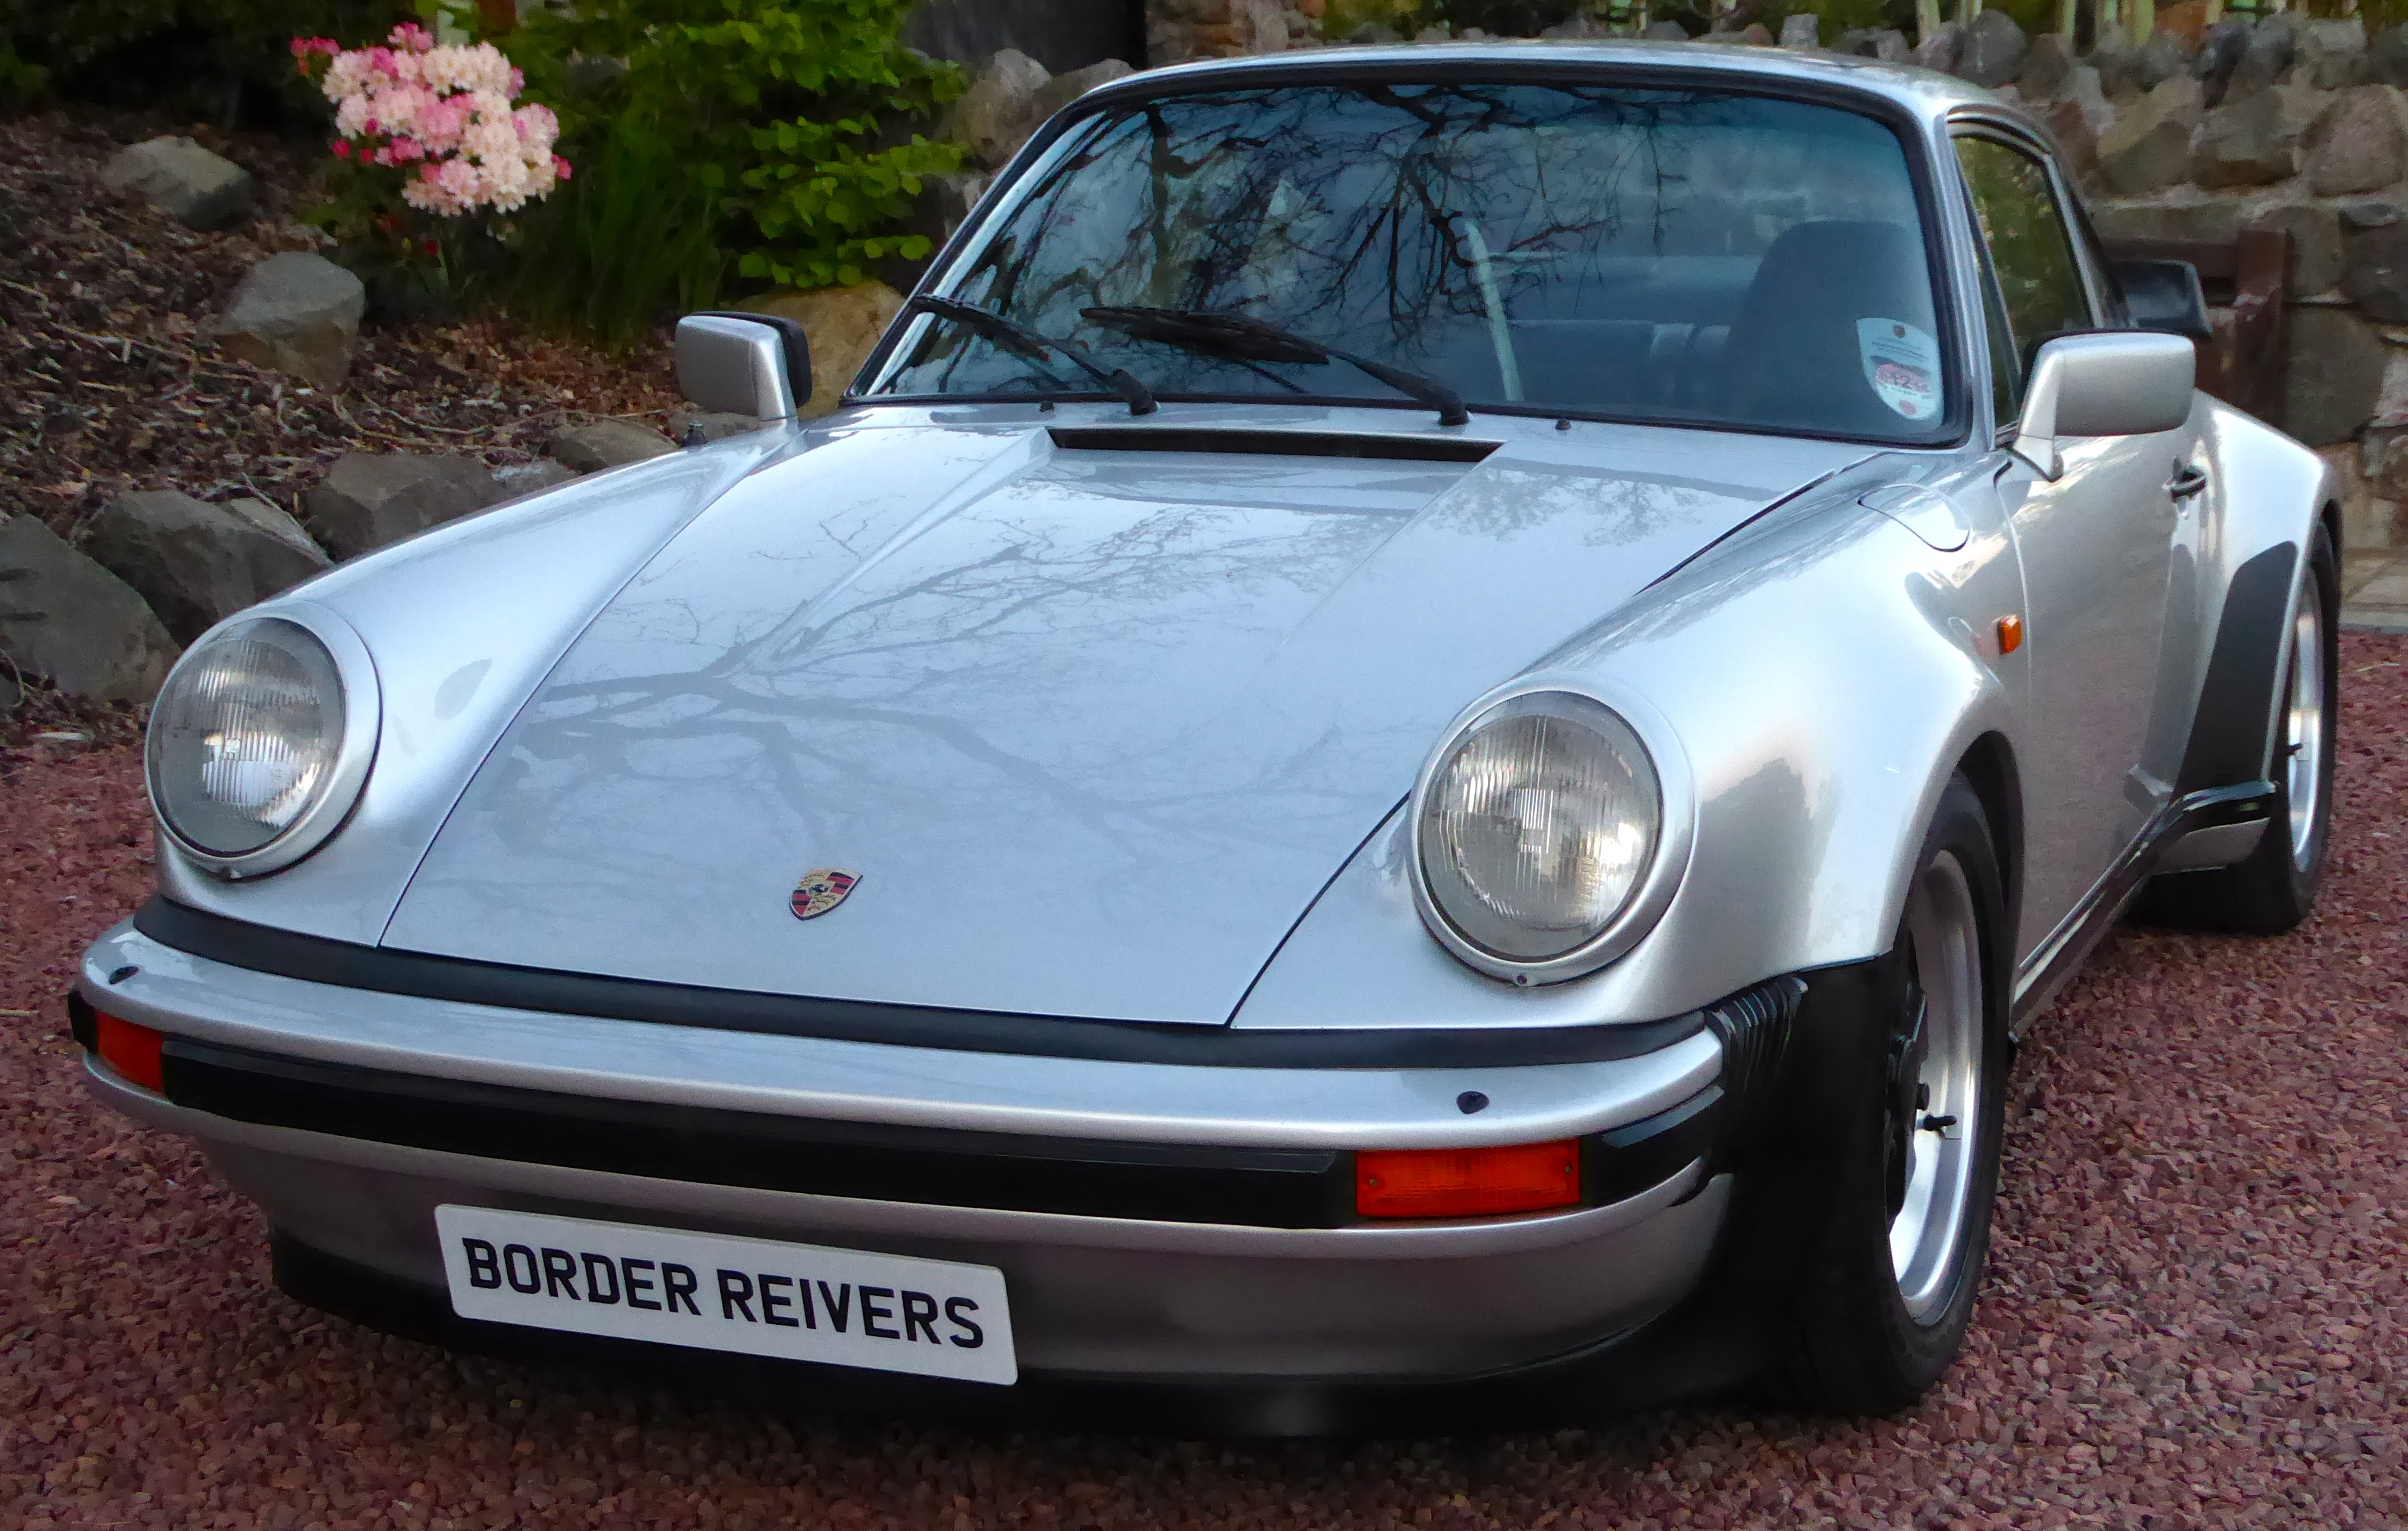 Porsche 930 Turbo Border Reivers